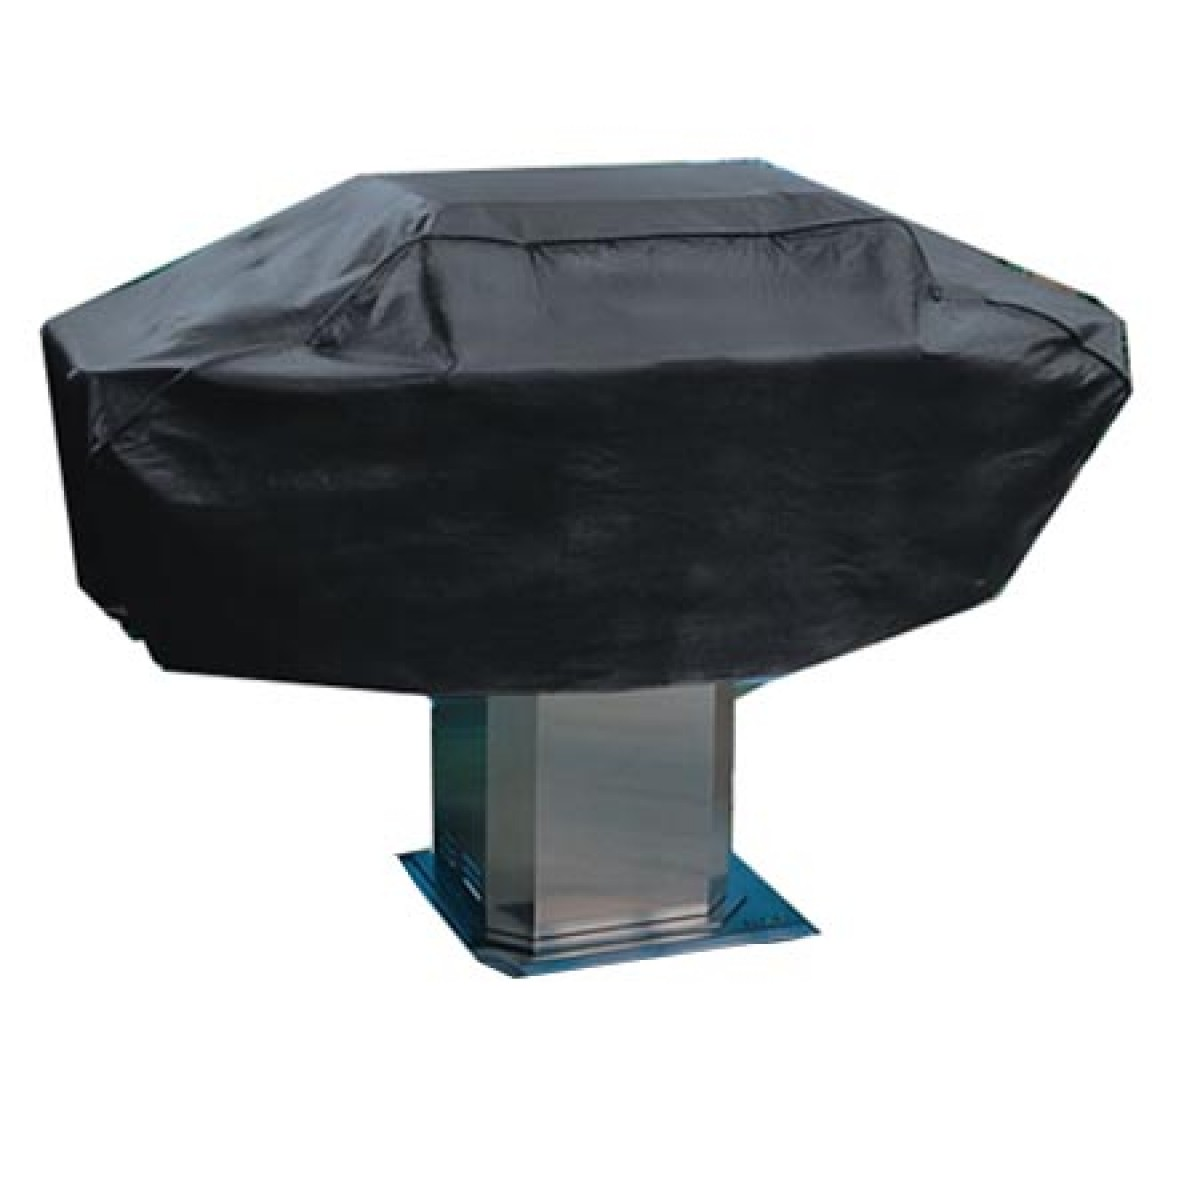 Mhp Ggcvprem Polyester Lined Grill Cover For Wnk Tjk At